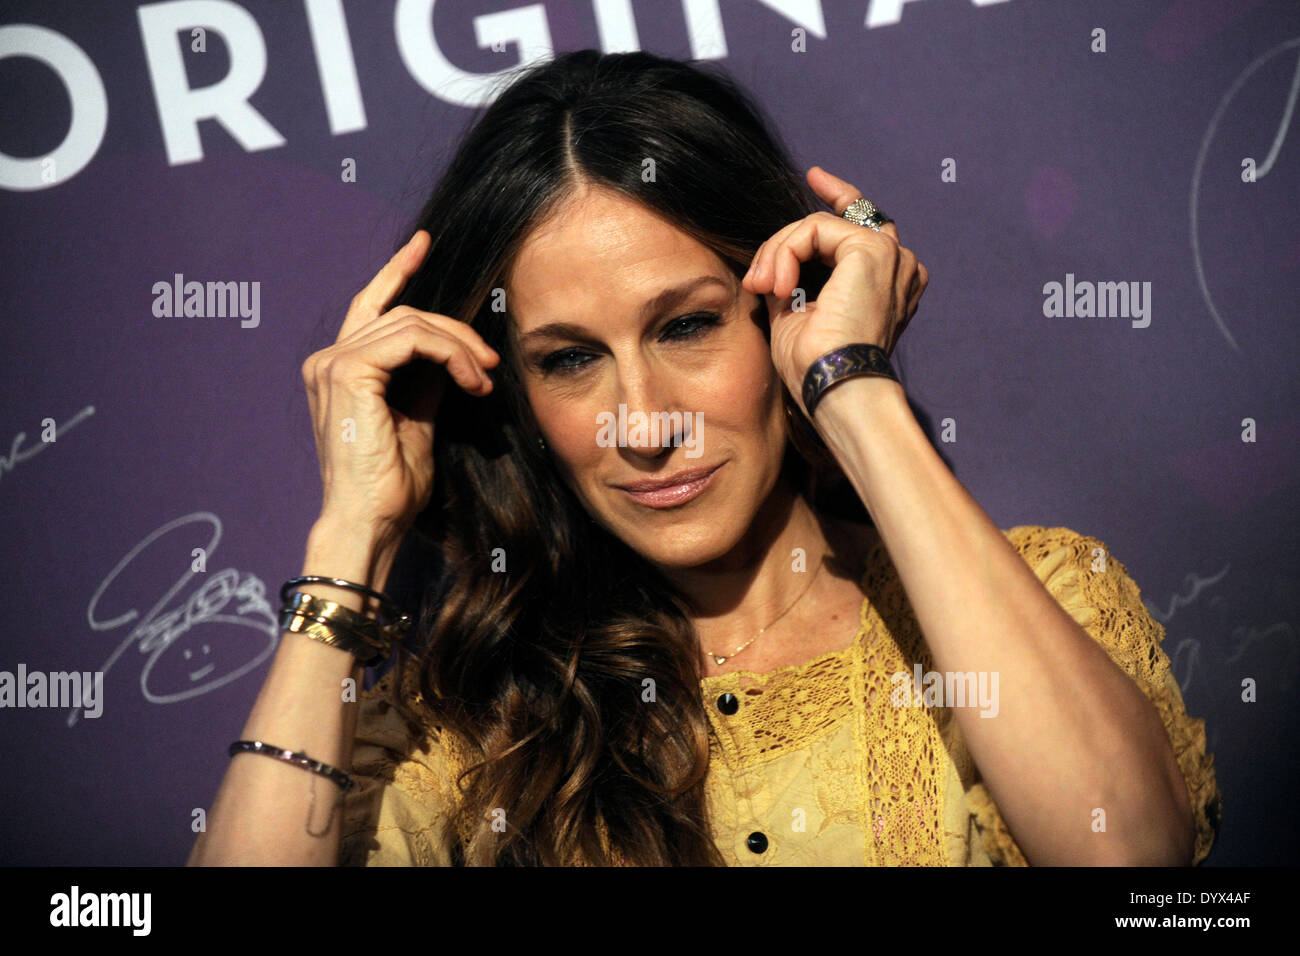 New York, NY, USA. 25. April 2014. Sarah Jessica Parker besucht Variety Powerfrauen: New York Mittagessen bei Cipriani 42nd Street am 25. April 2014 in New York City Credit: Dpa picture-Alliance/Alamy Live News Stockbild